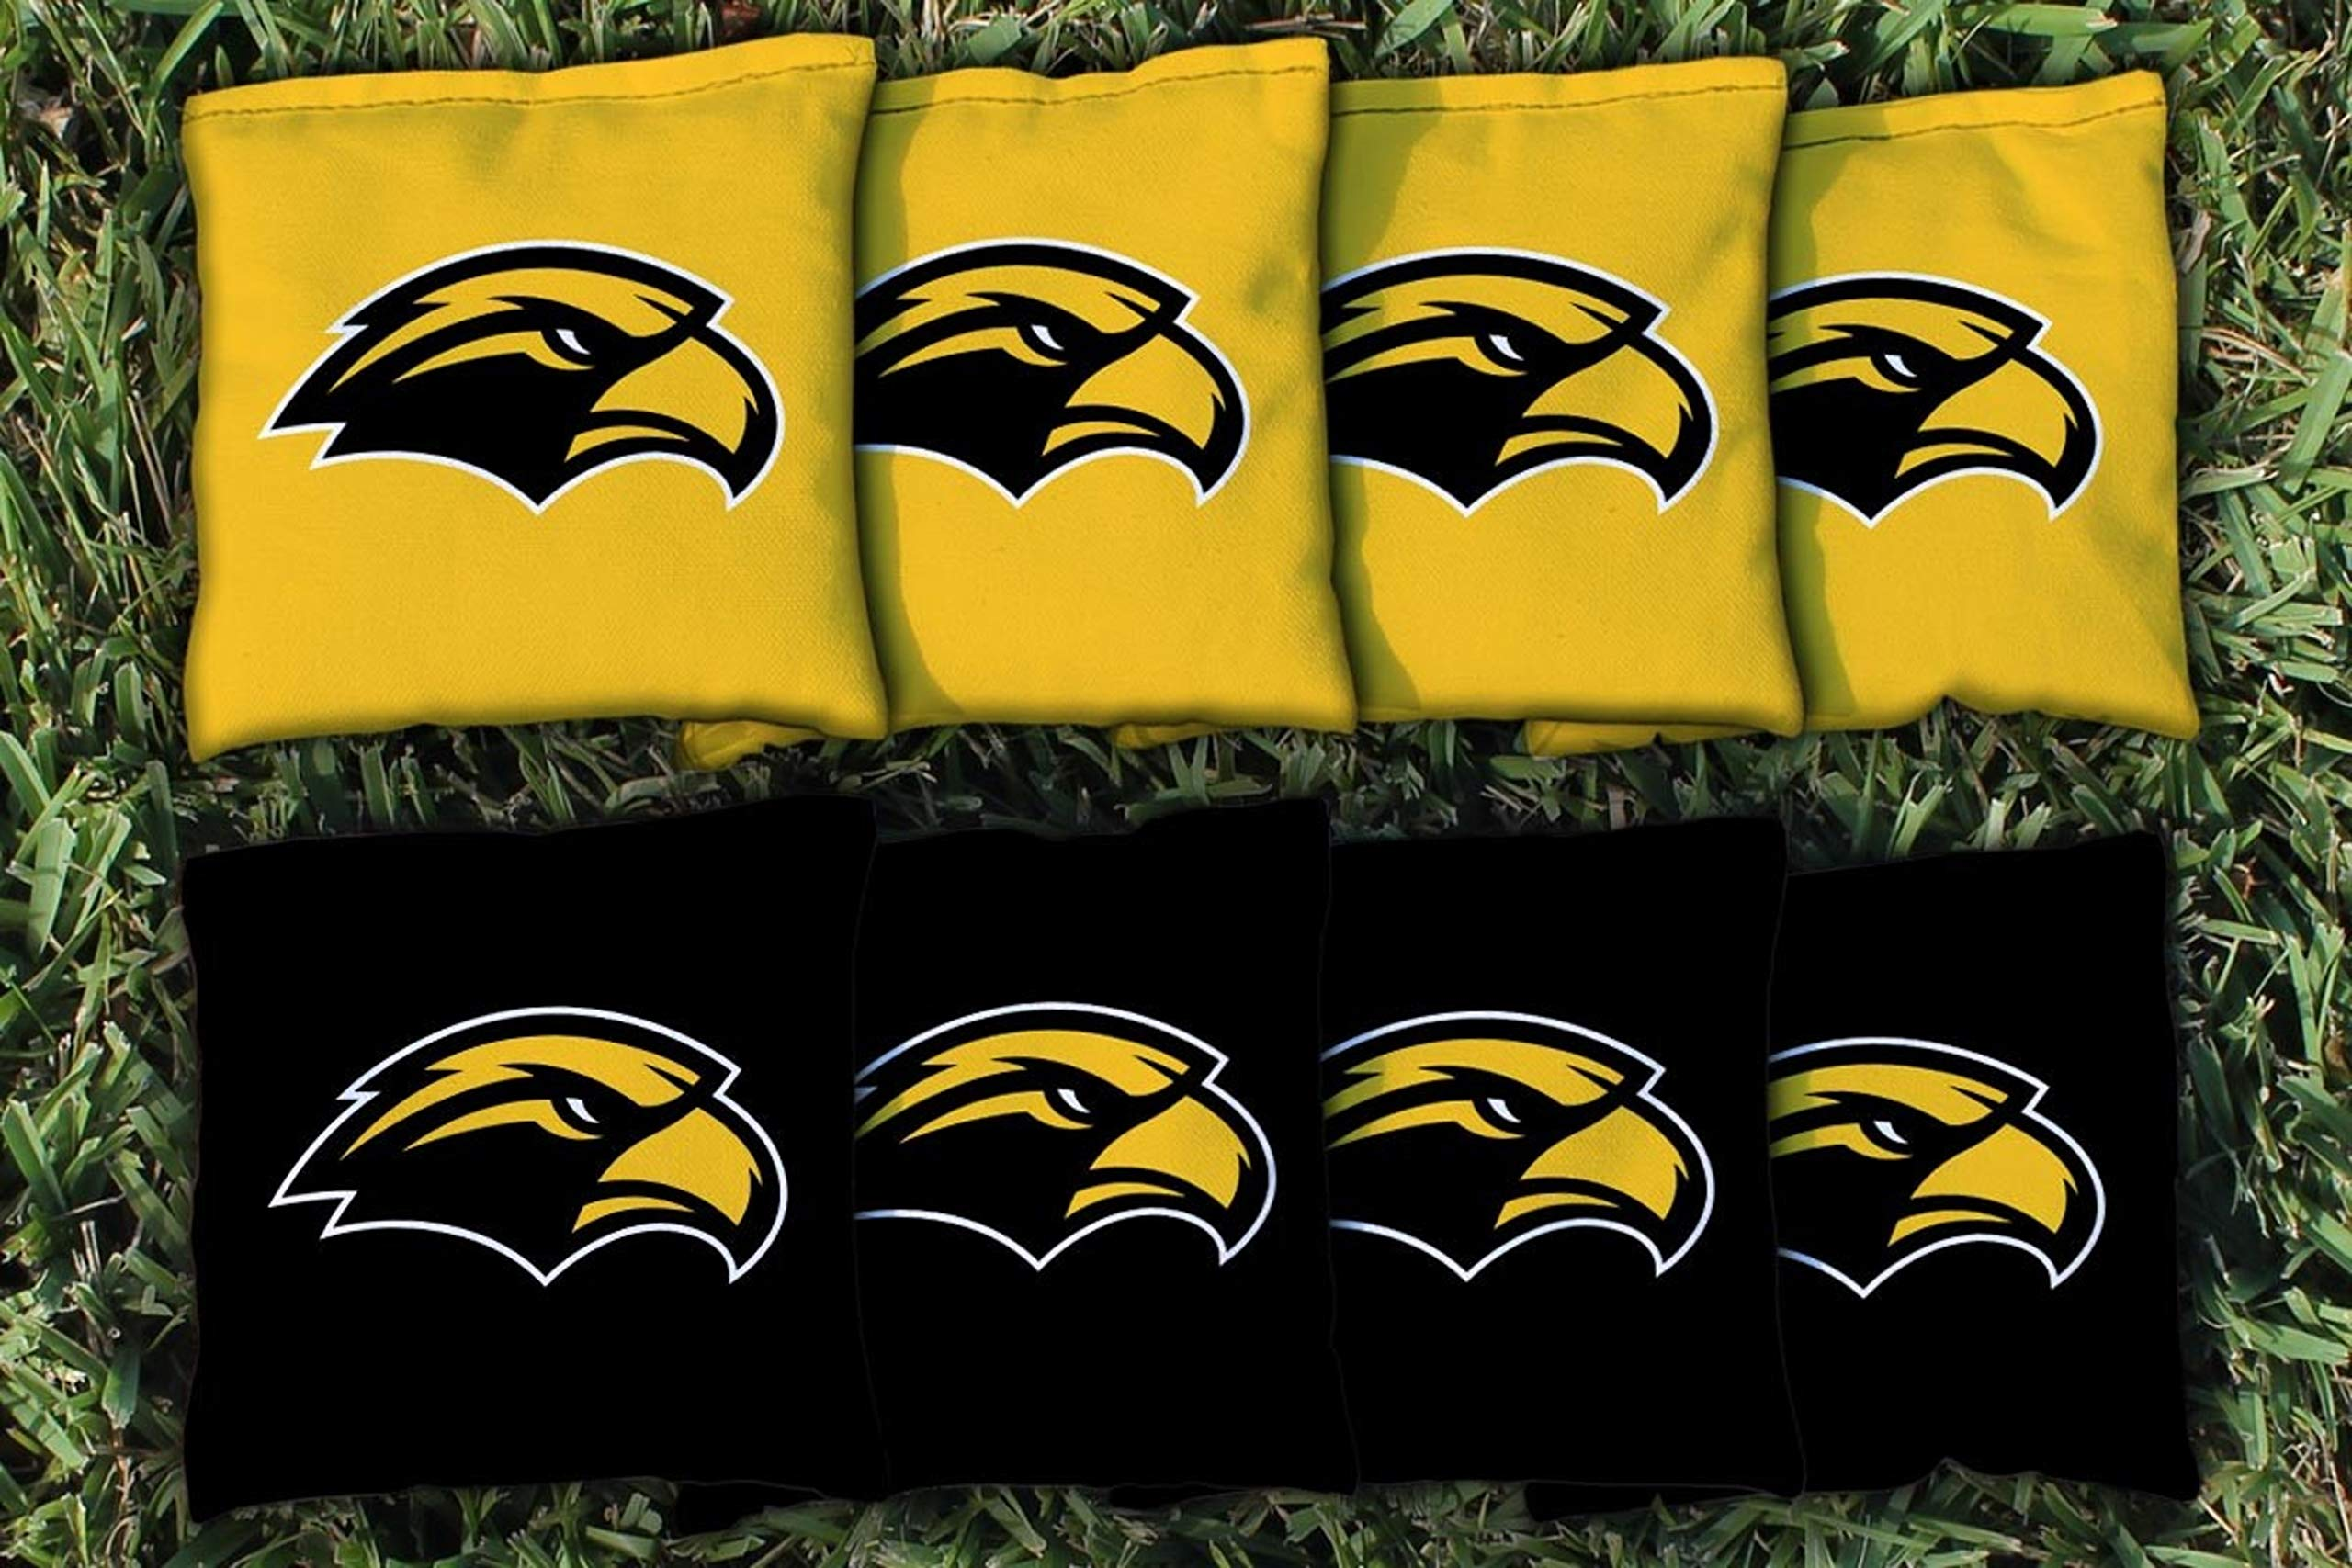 Victory Tailgate NCAA Collegiate Regulation Cornhole Game Bag Set (8 Bags Included, Corn-Filled) - Southern Mississippi Golden Eagles by Victory Tailgate